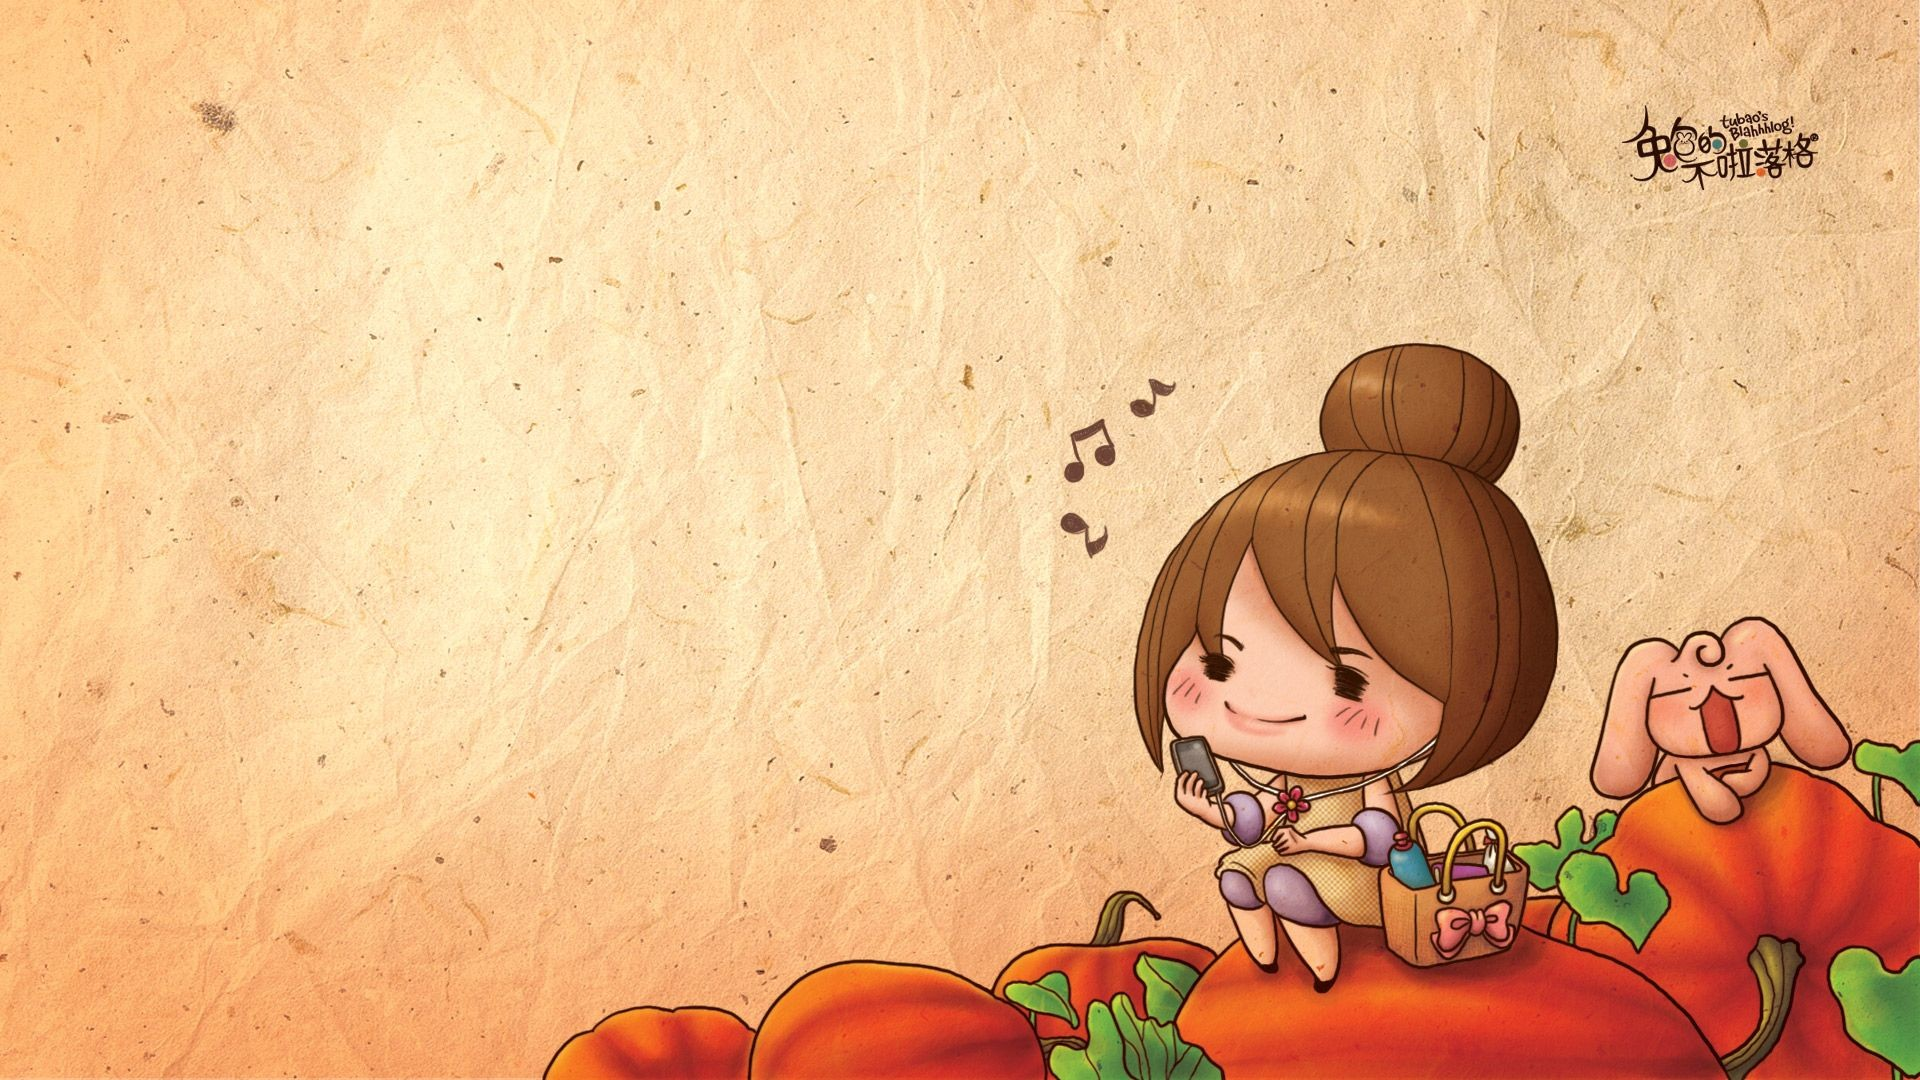 Res: 1920x1080, Cute Thanksgiving Wallpapers High Resolution